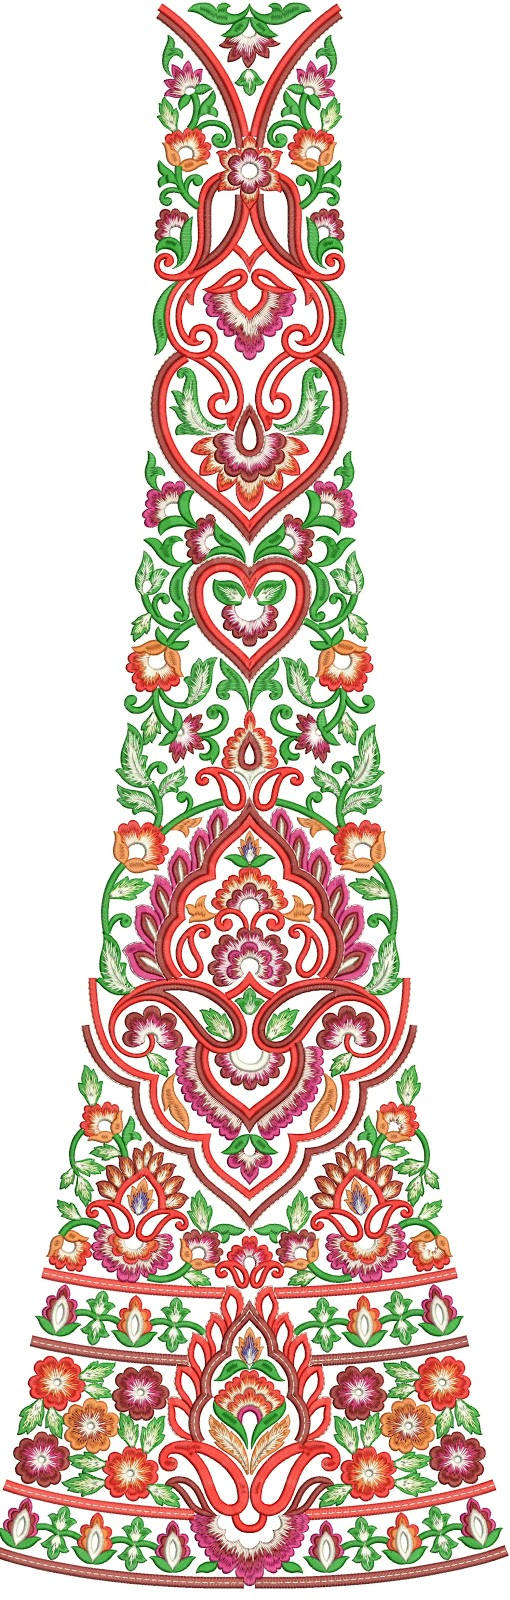 FREE EMBROIDERY DESIGNS DOWNLOADS  EMBROIDERY Amp ORIGAMI